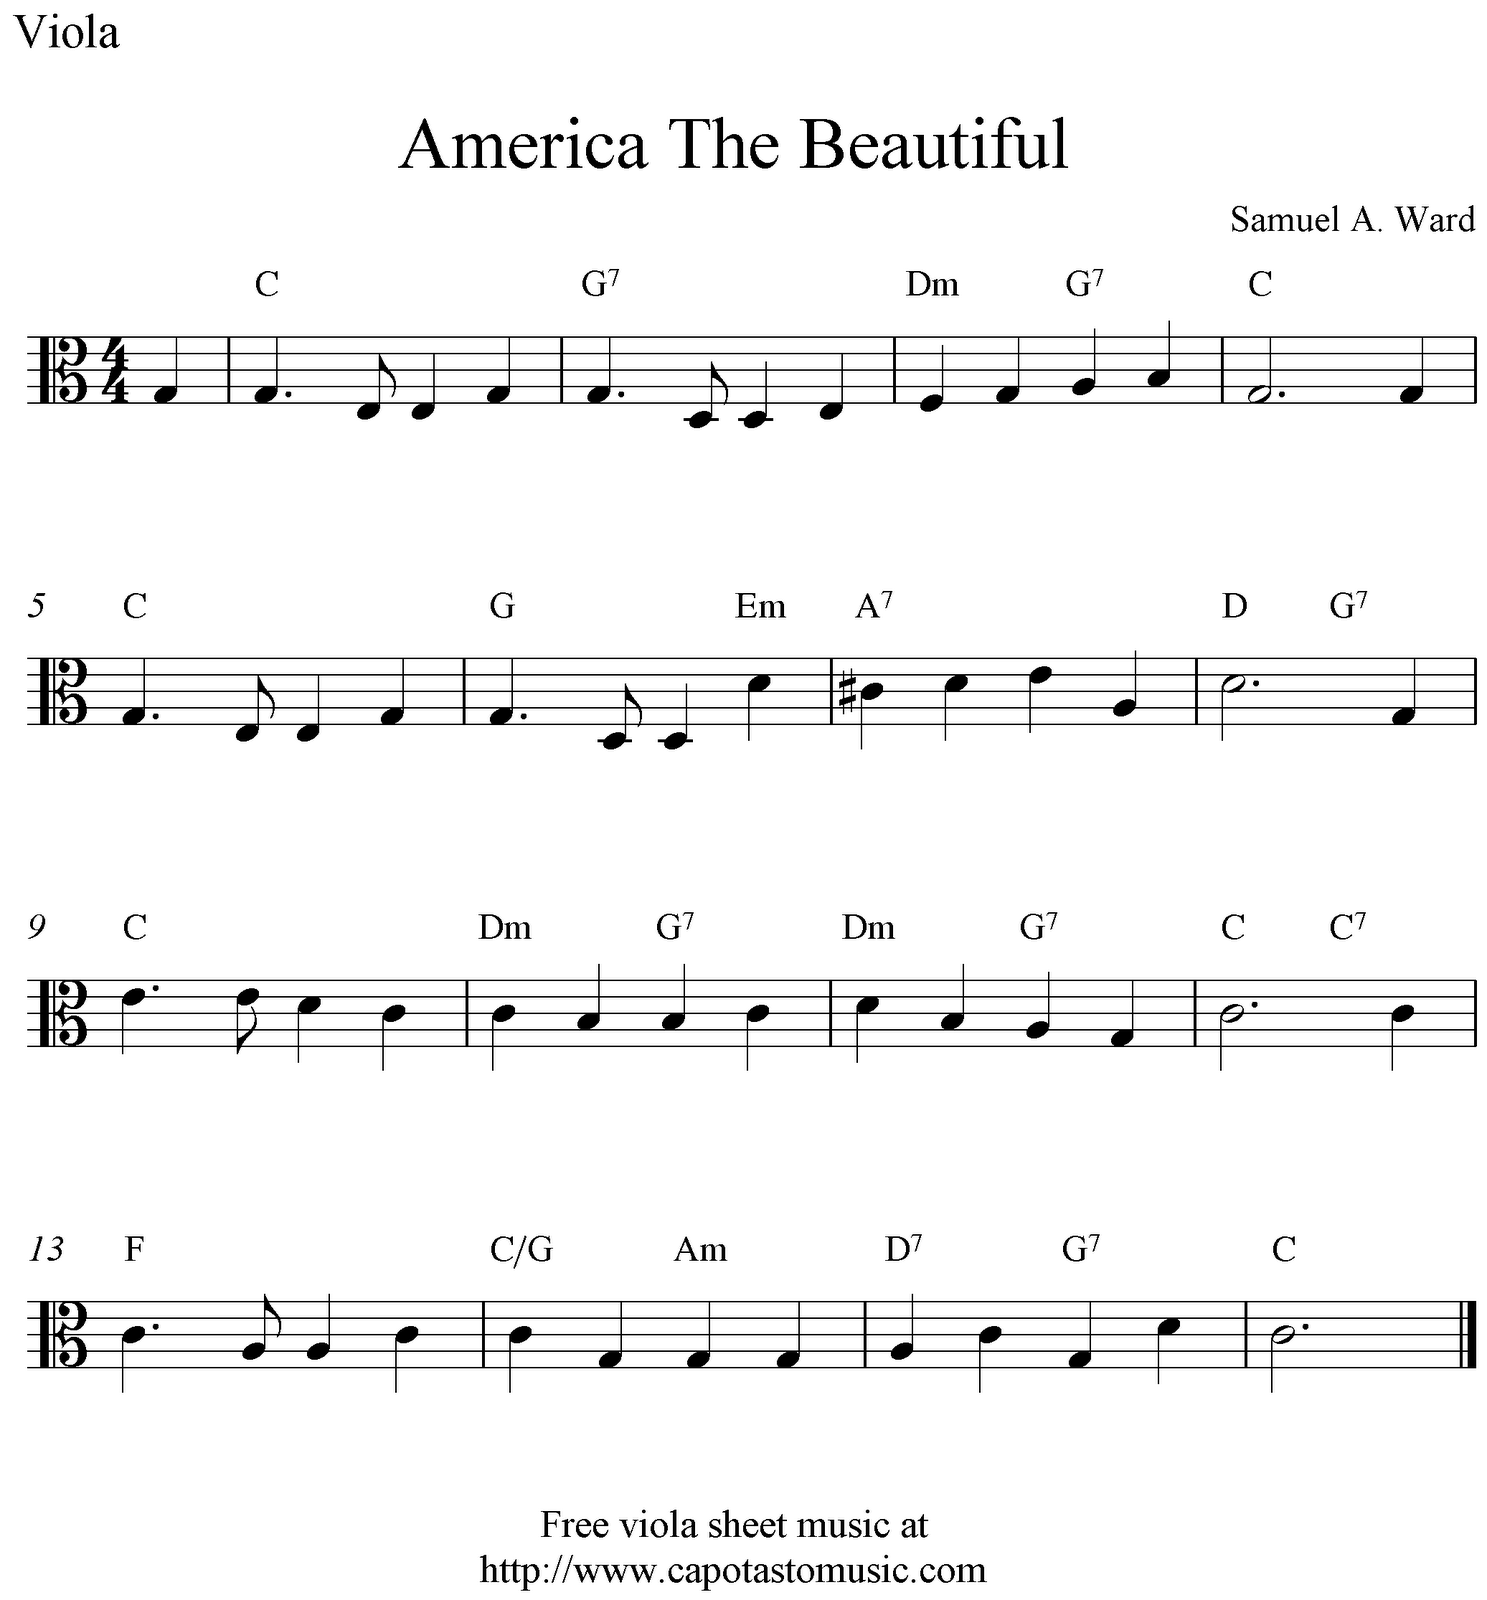 This is an image of Dynamite Free Printable Sheet Music for the Sound of Music